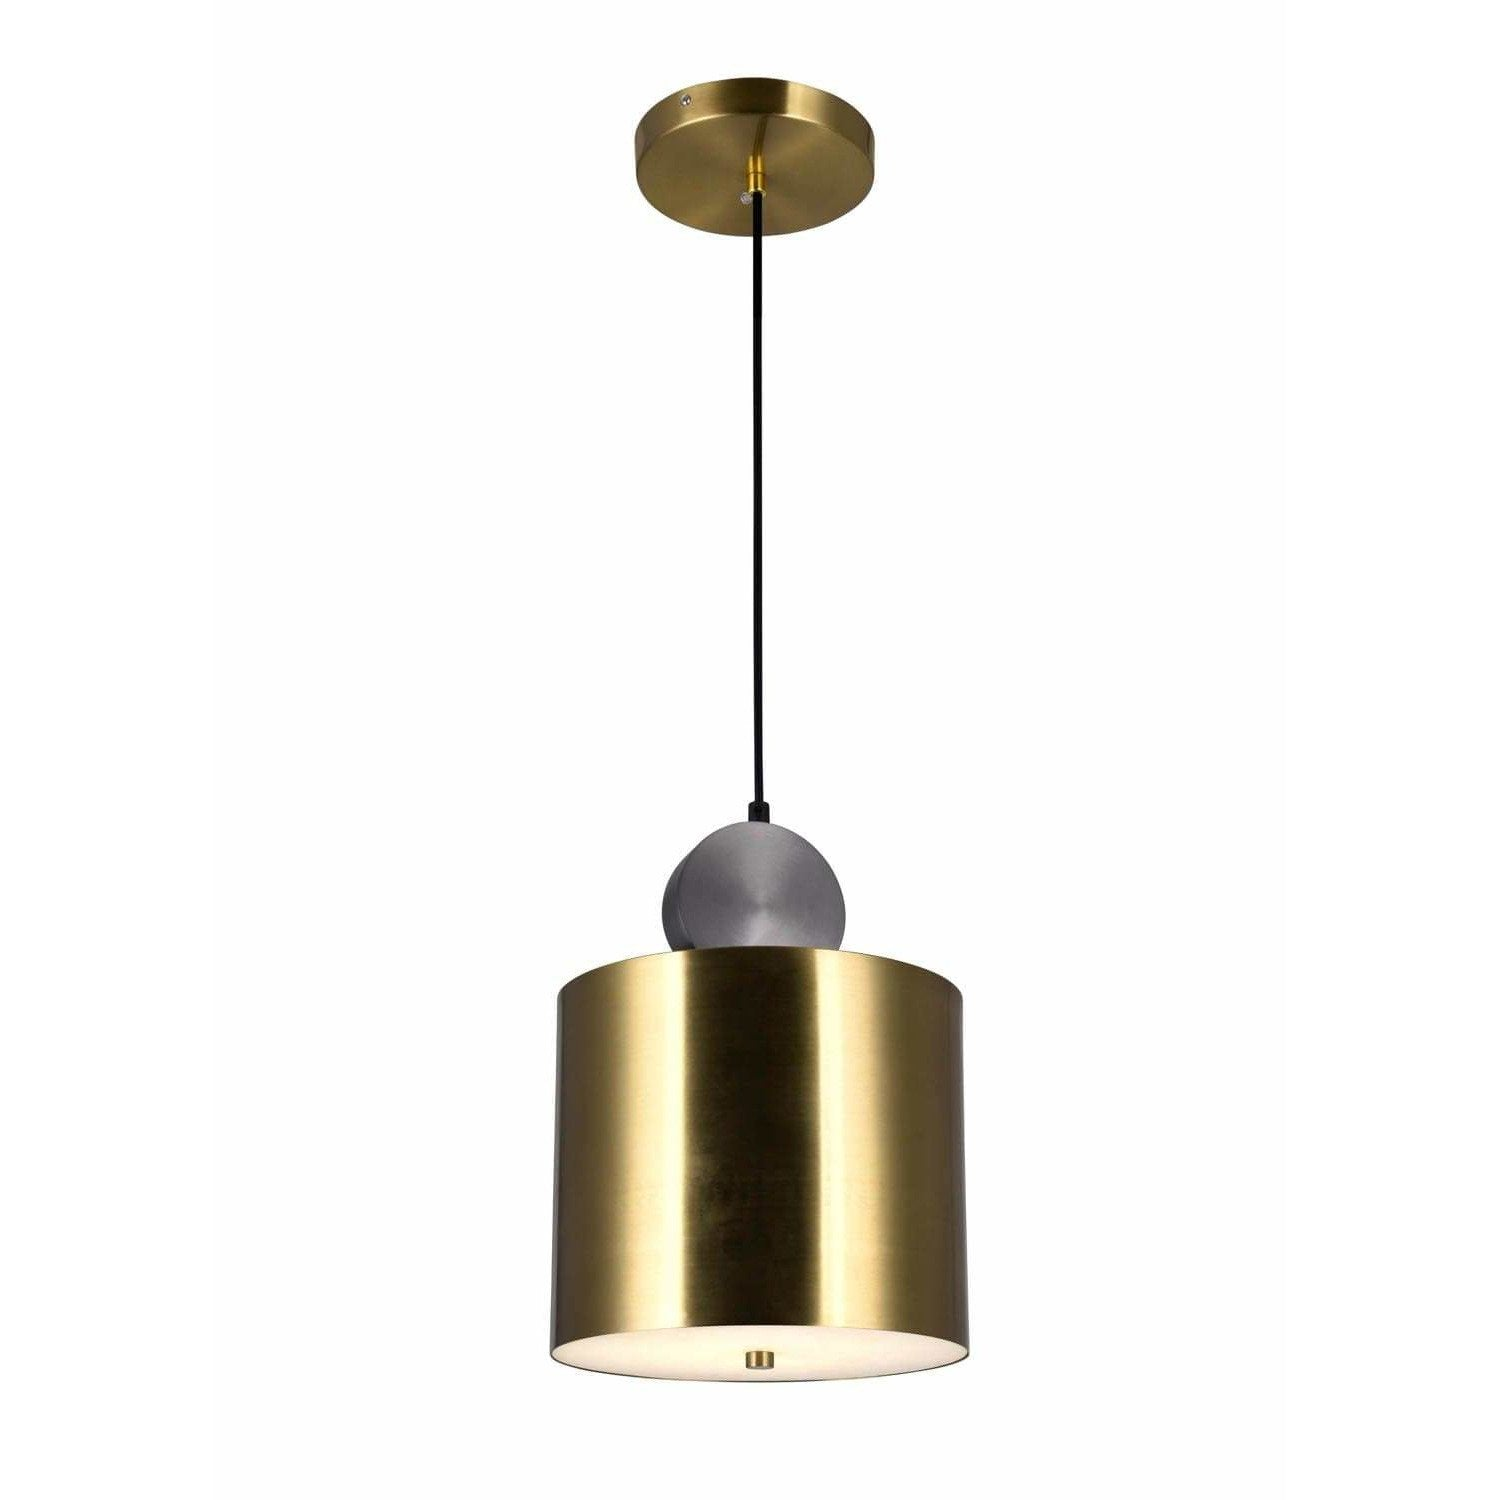 CWI Lighting Pendants Brass+Black Saleen LED Mini Pendant with Brass+Black Finish by CWI Lighting 1156P9-625